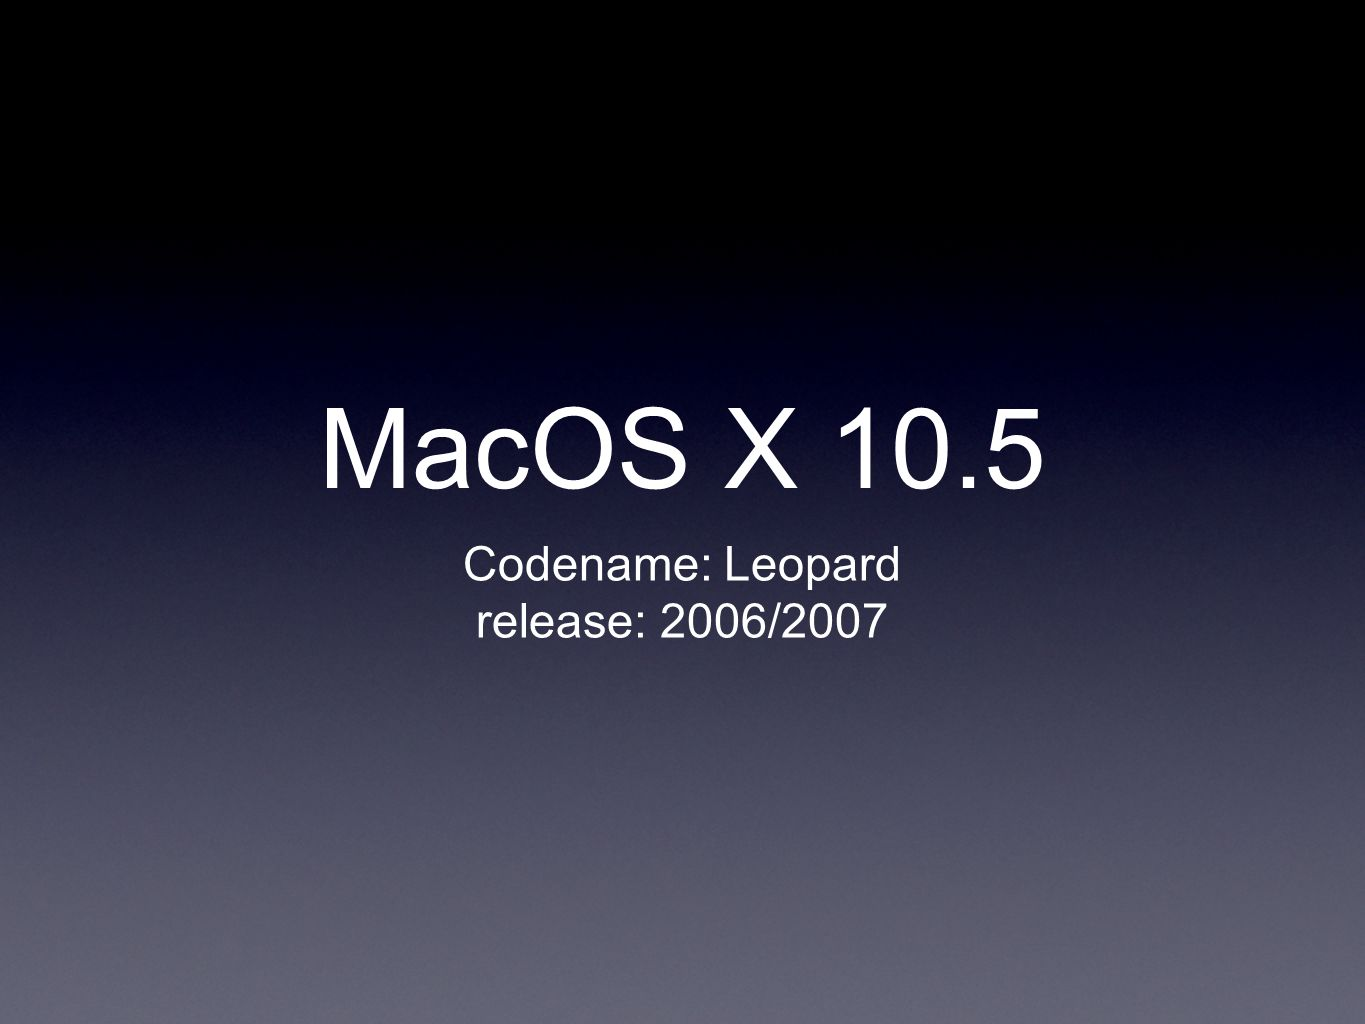 MacOS X 10.5 Codename: Leopard release: 2006/2007